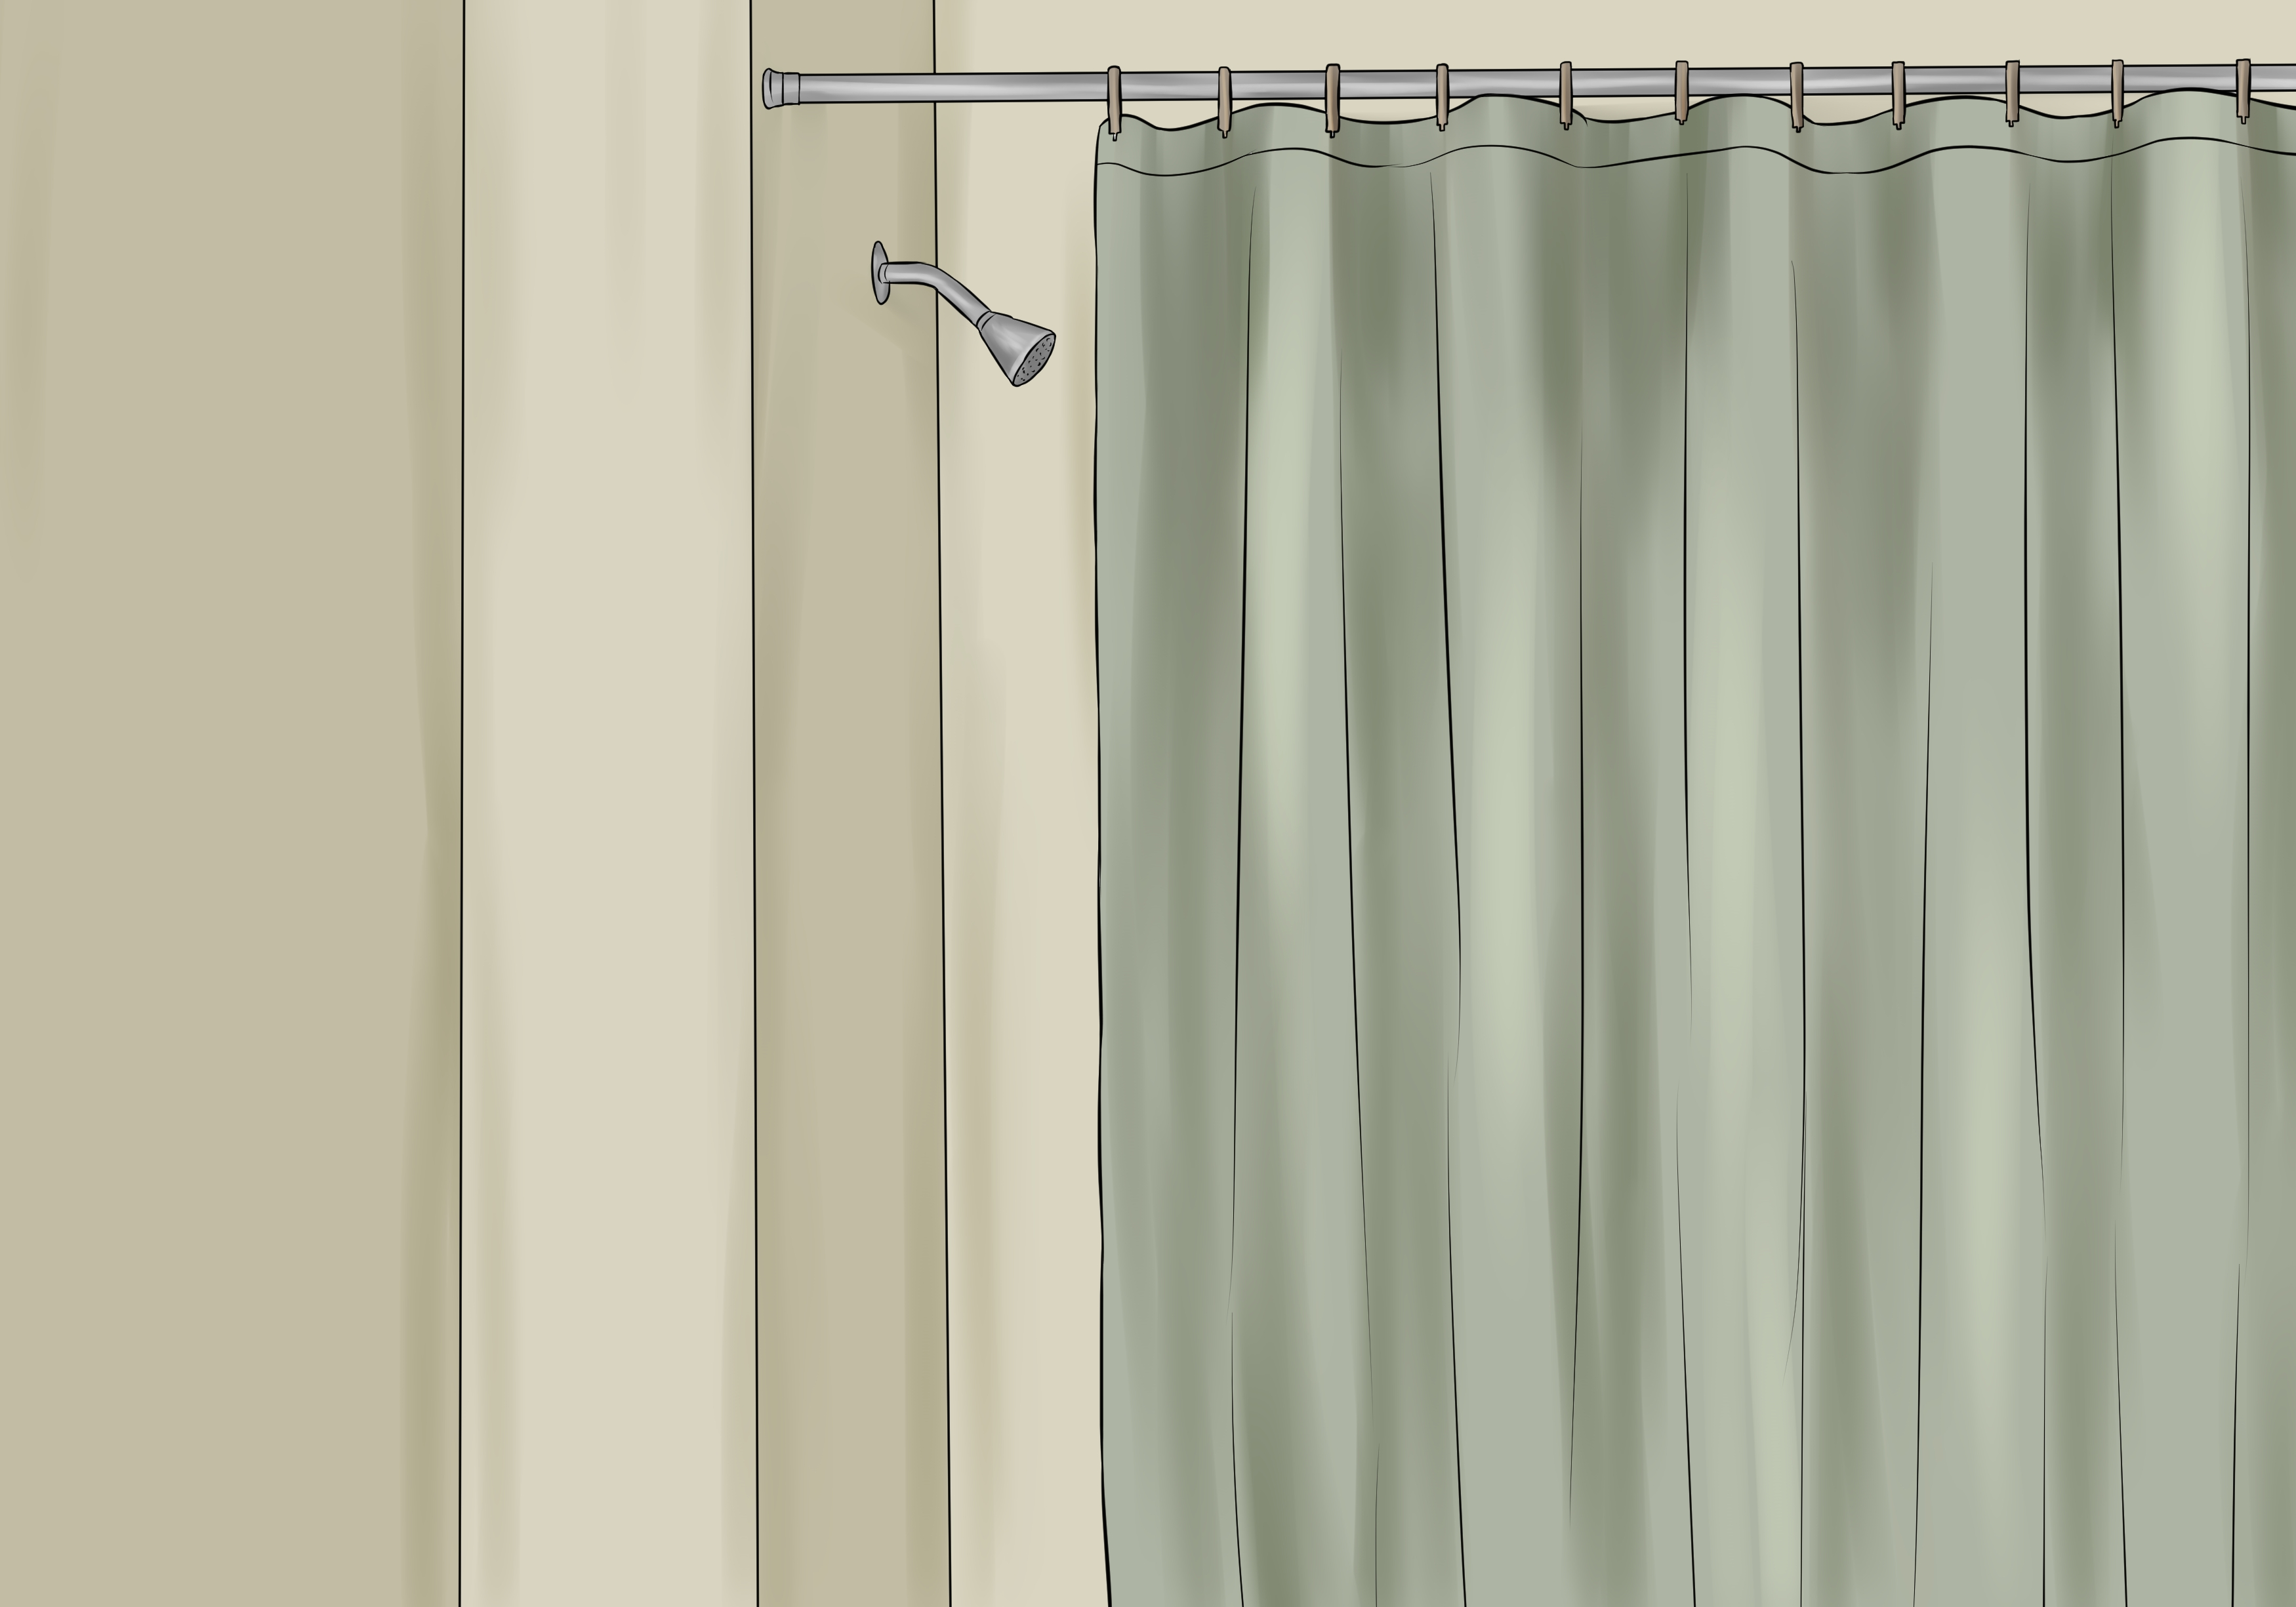 Shower Curtain Tension Rod | Double Shower Curtain Rod | Strong Shower Curtain Rod